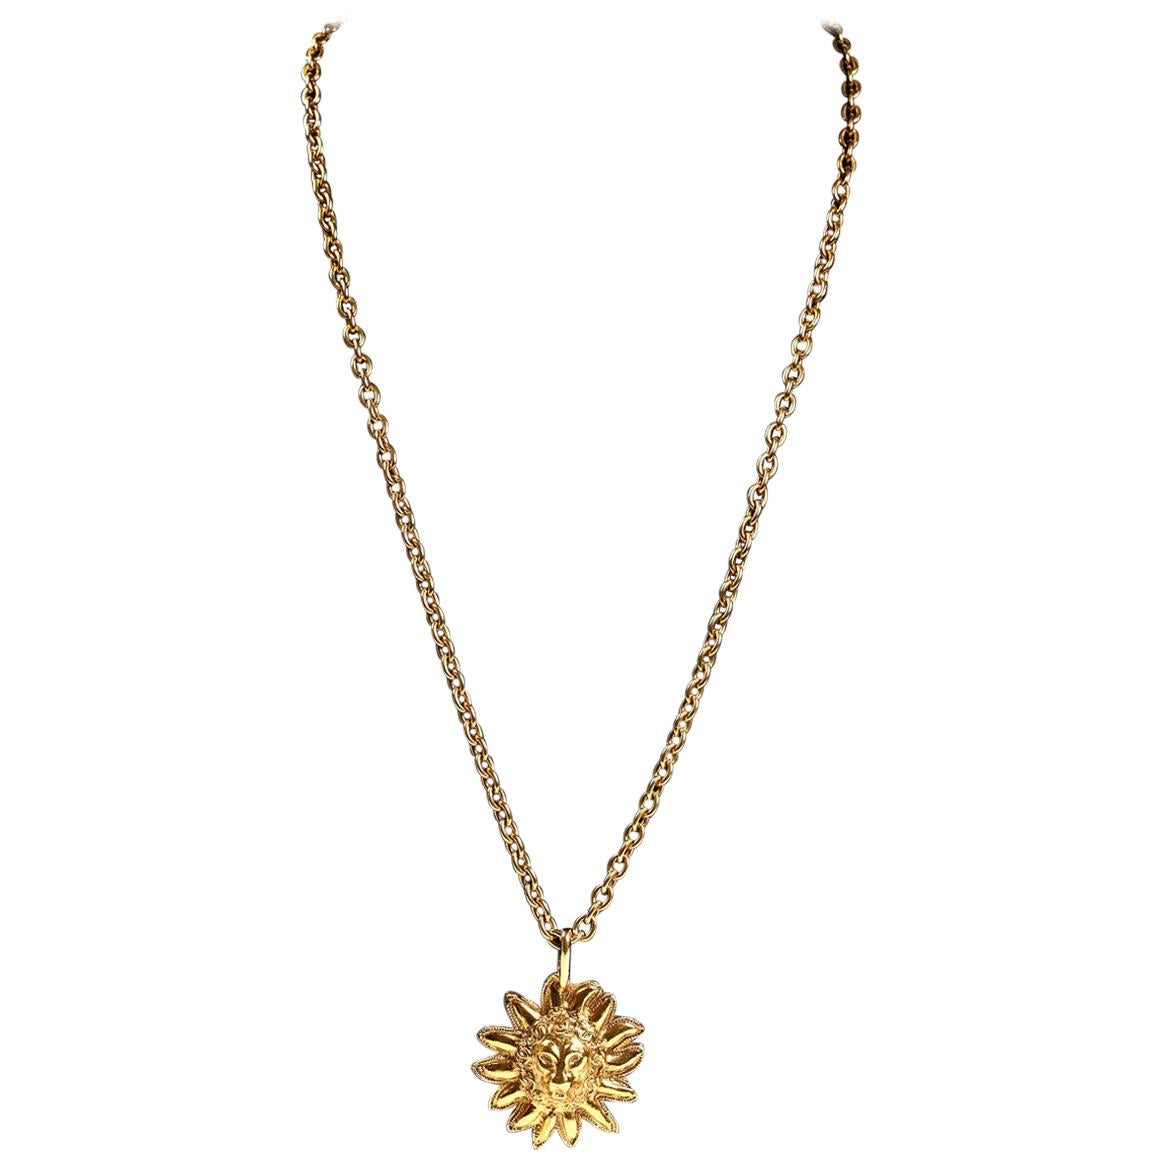 15e7cba74d3 Vintage Chanel Necklaces - 623 For Sale at 1stdibs - Page 4